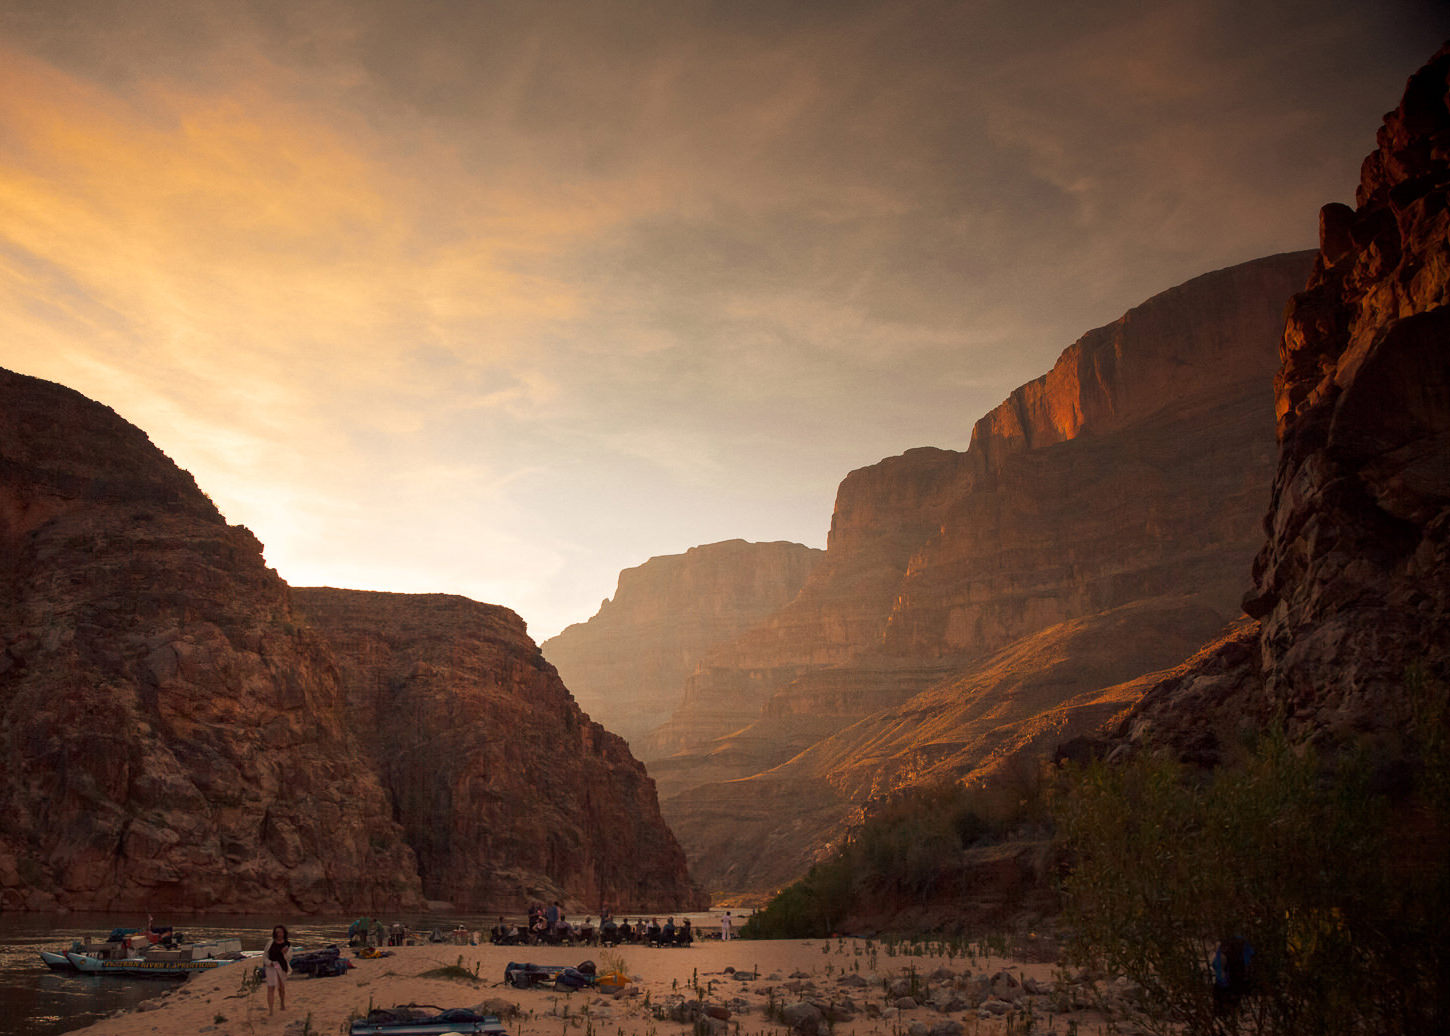 Grand Canyon float trip adventure vacation with Western River outfitters